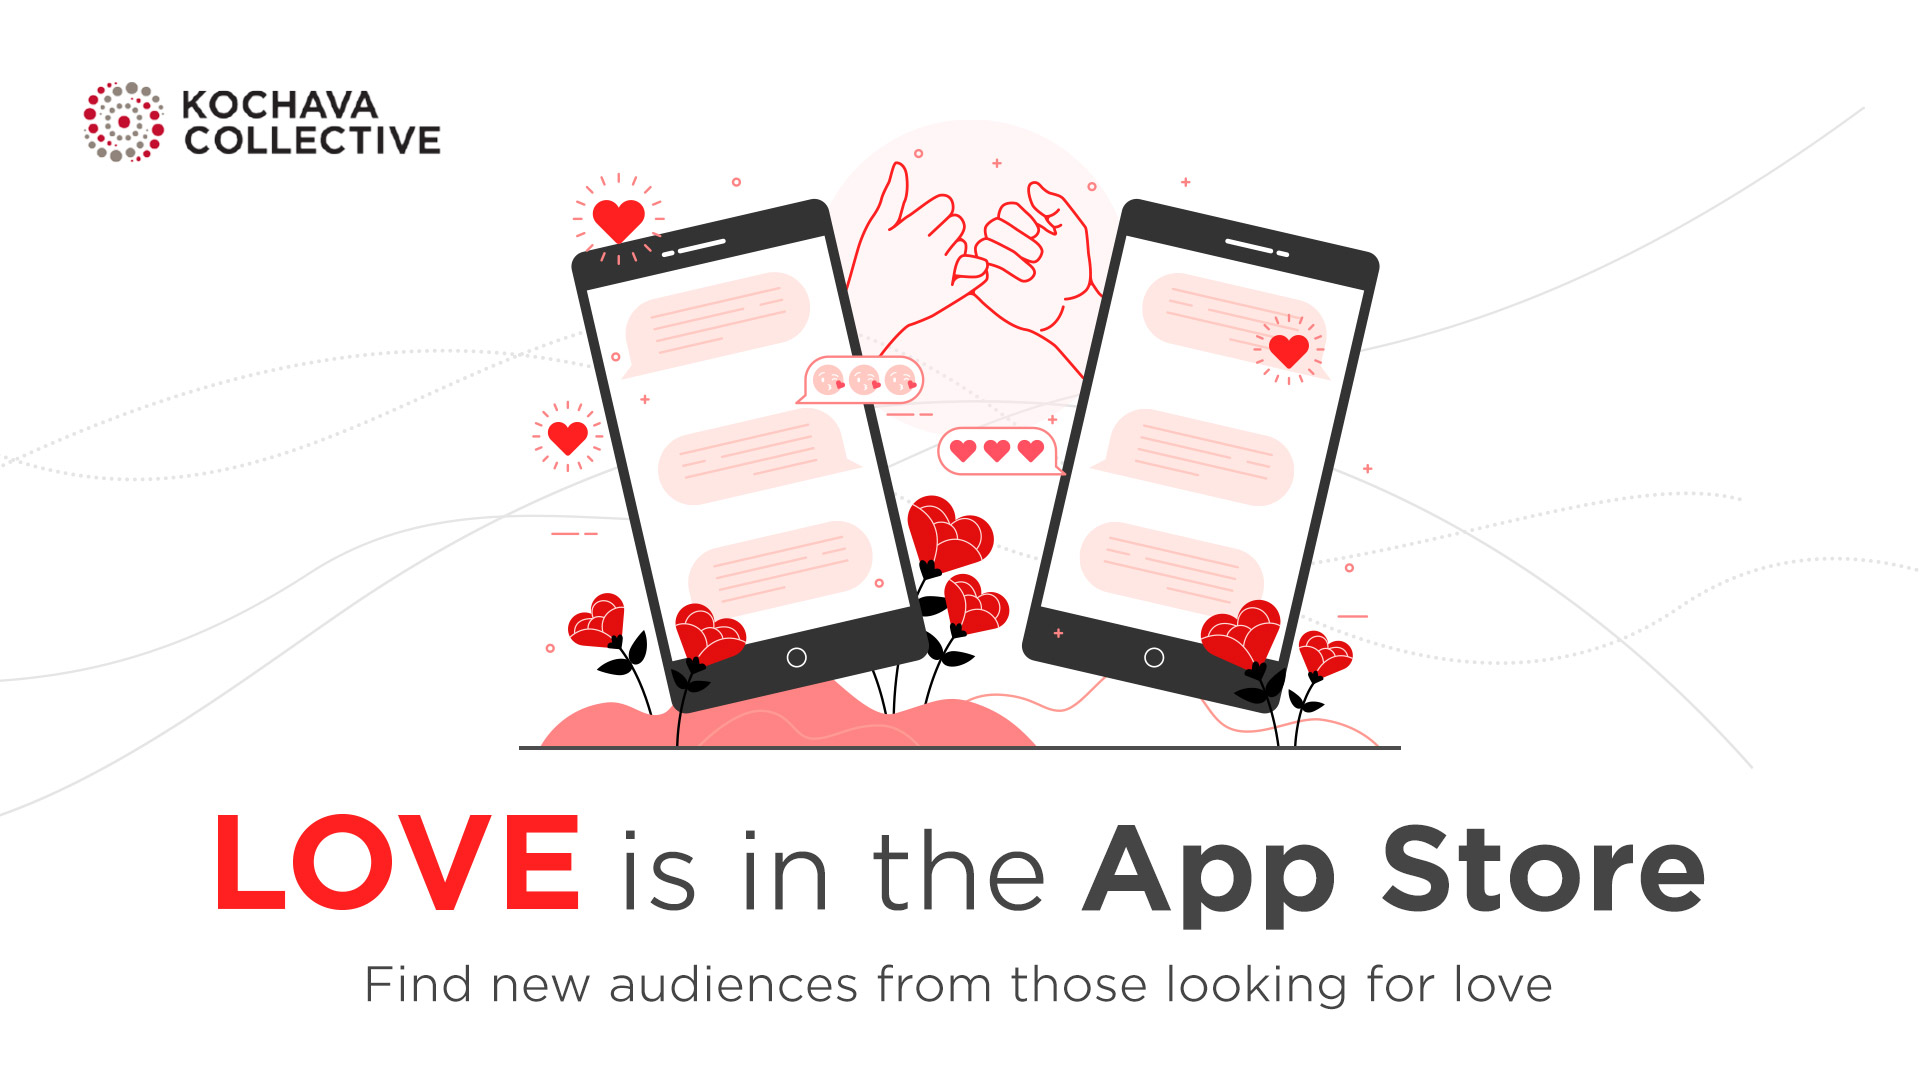 The top 5 dating apps from the Kochava Collective